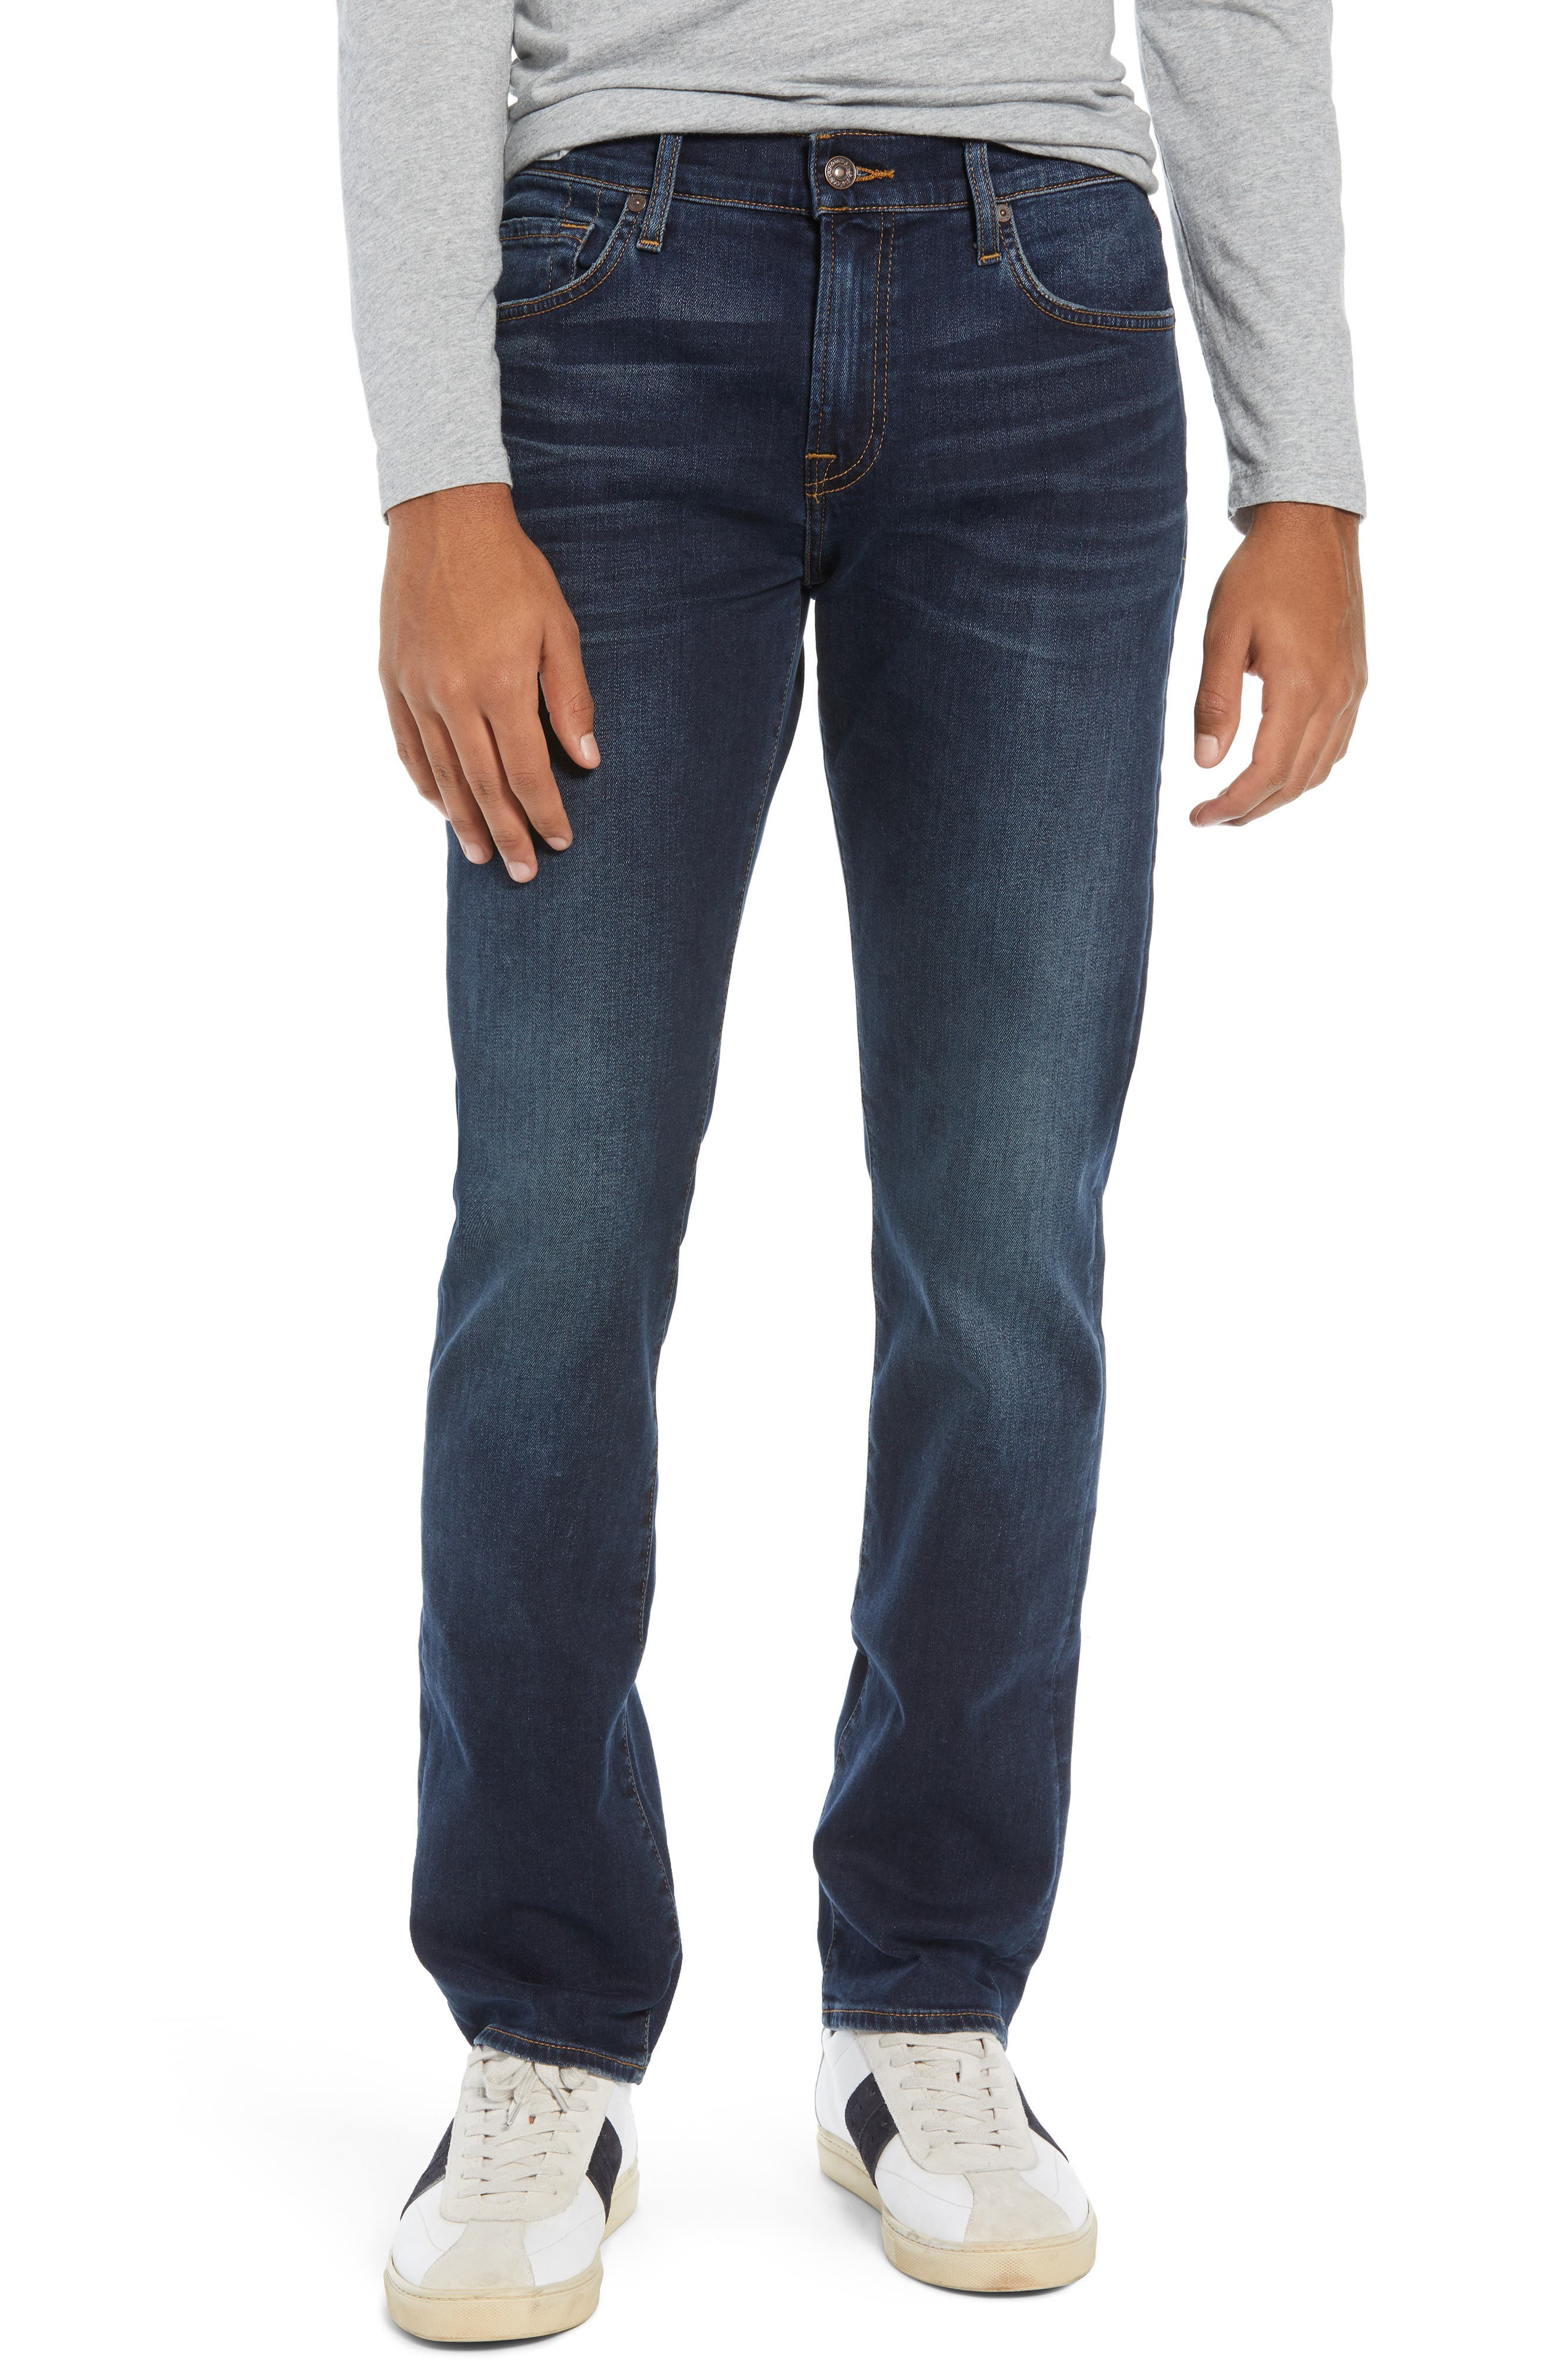 Slimmy Slim Fit Jeans,                             Main thumbnail 1, color,                             LONEWOLF